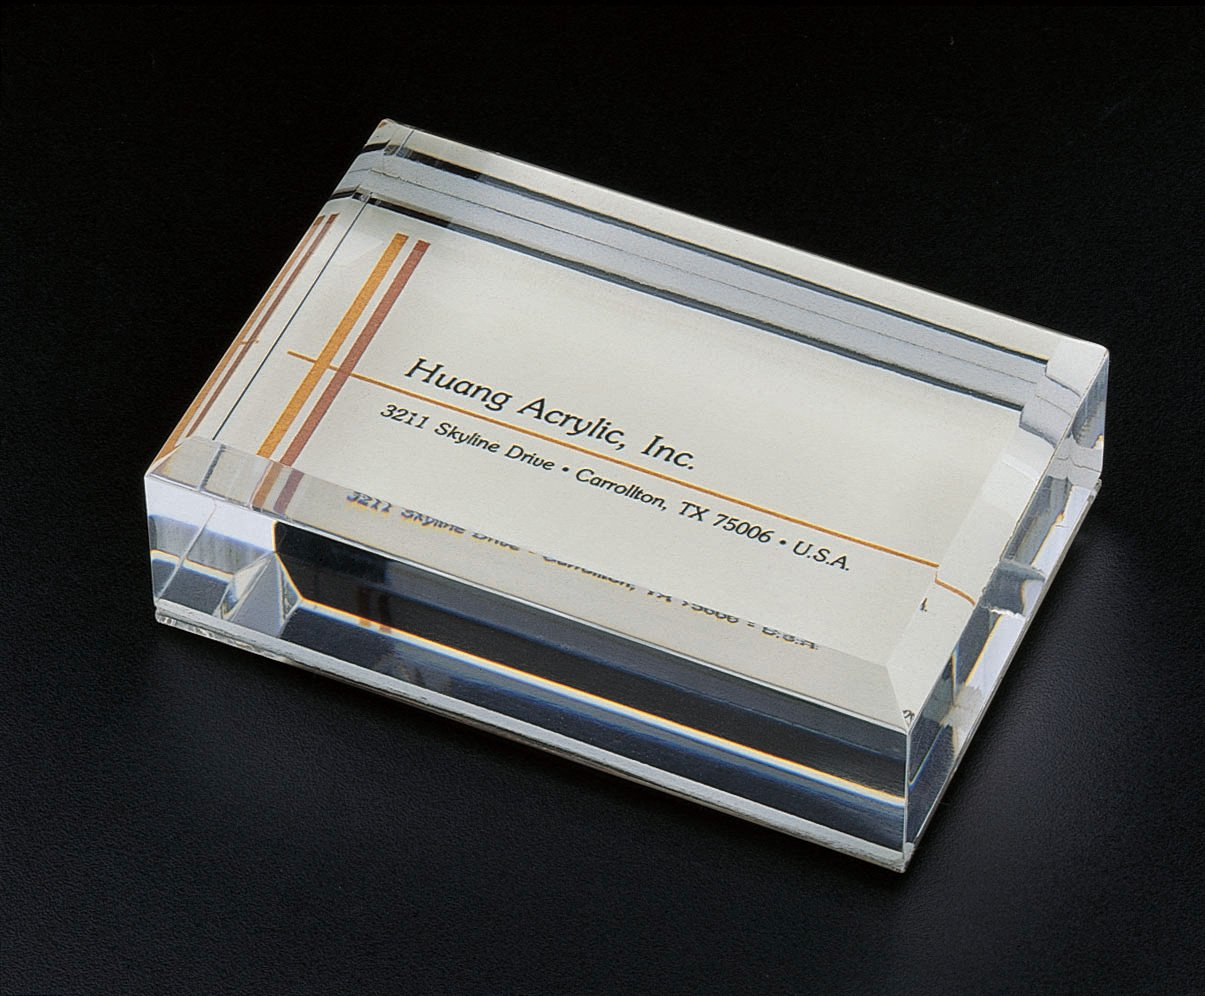 Amazon.com : Sliding-In Business Card Holder W/Paper Weight ...